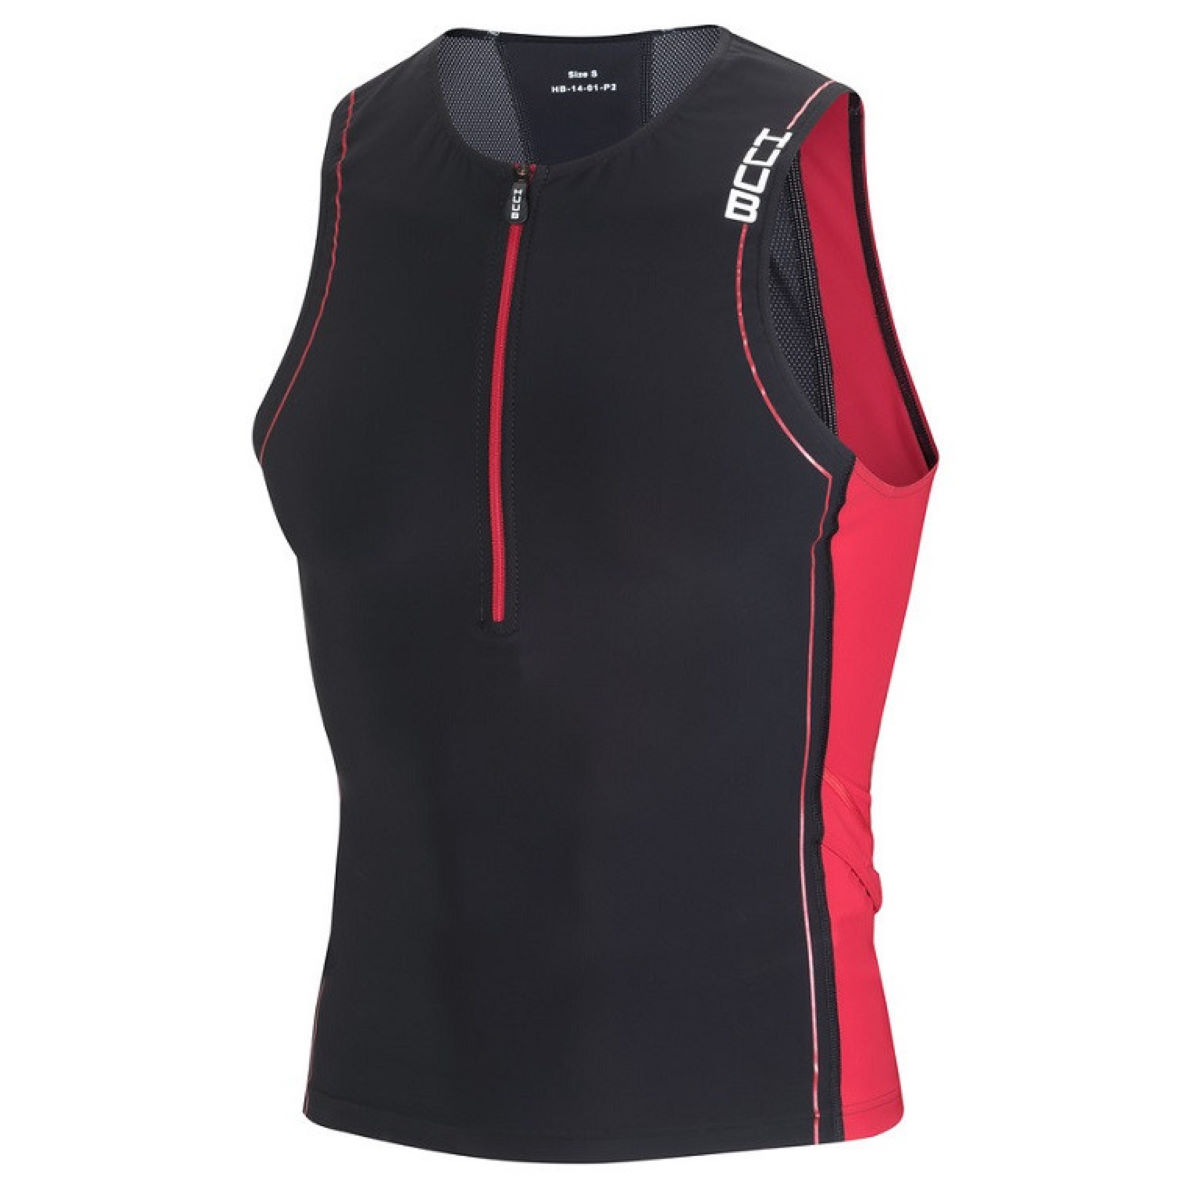 Haut de triathlon HUUB Core - XL Noir/Rouge Hauts de triathlon